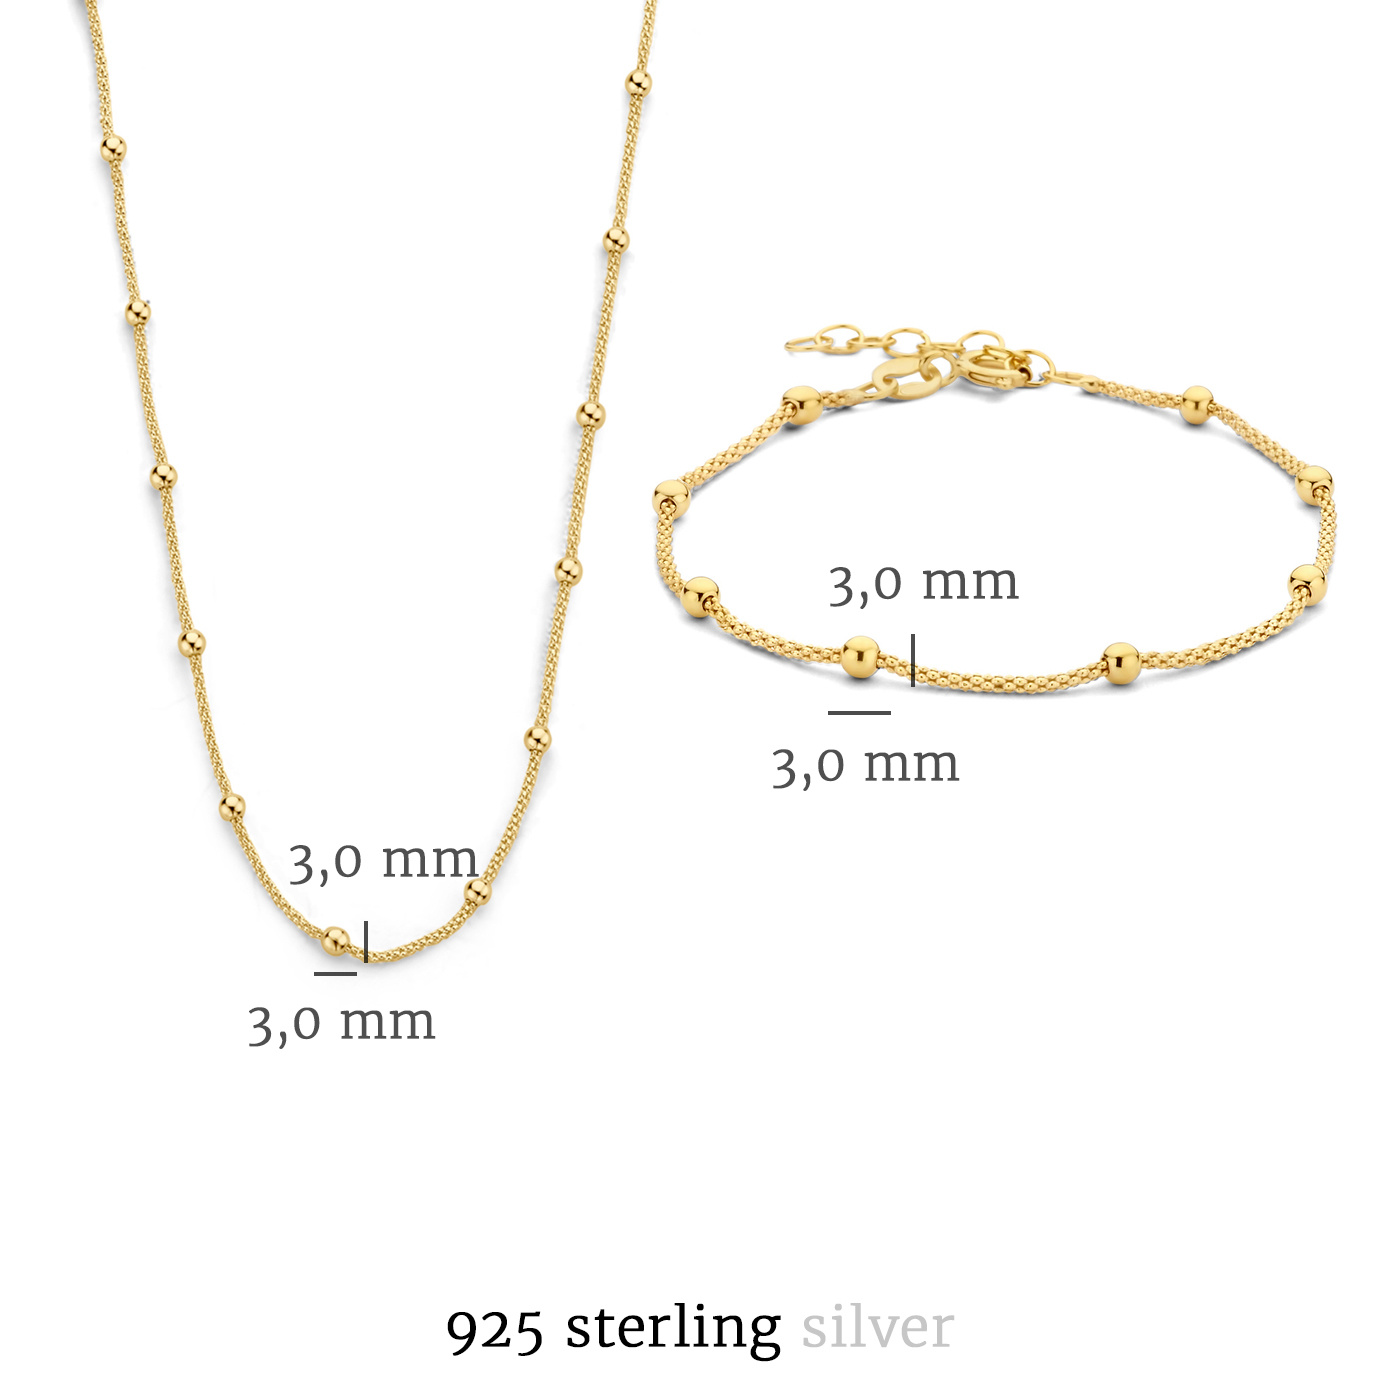 Selected Jewels Selected Gifts 925 sterling silver gold colored set bracelet and necklace